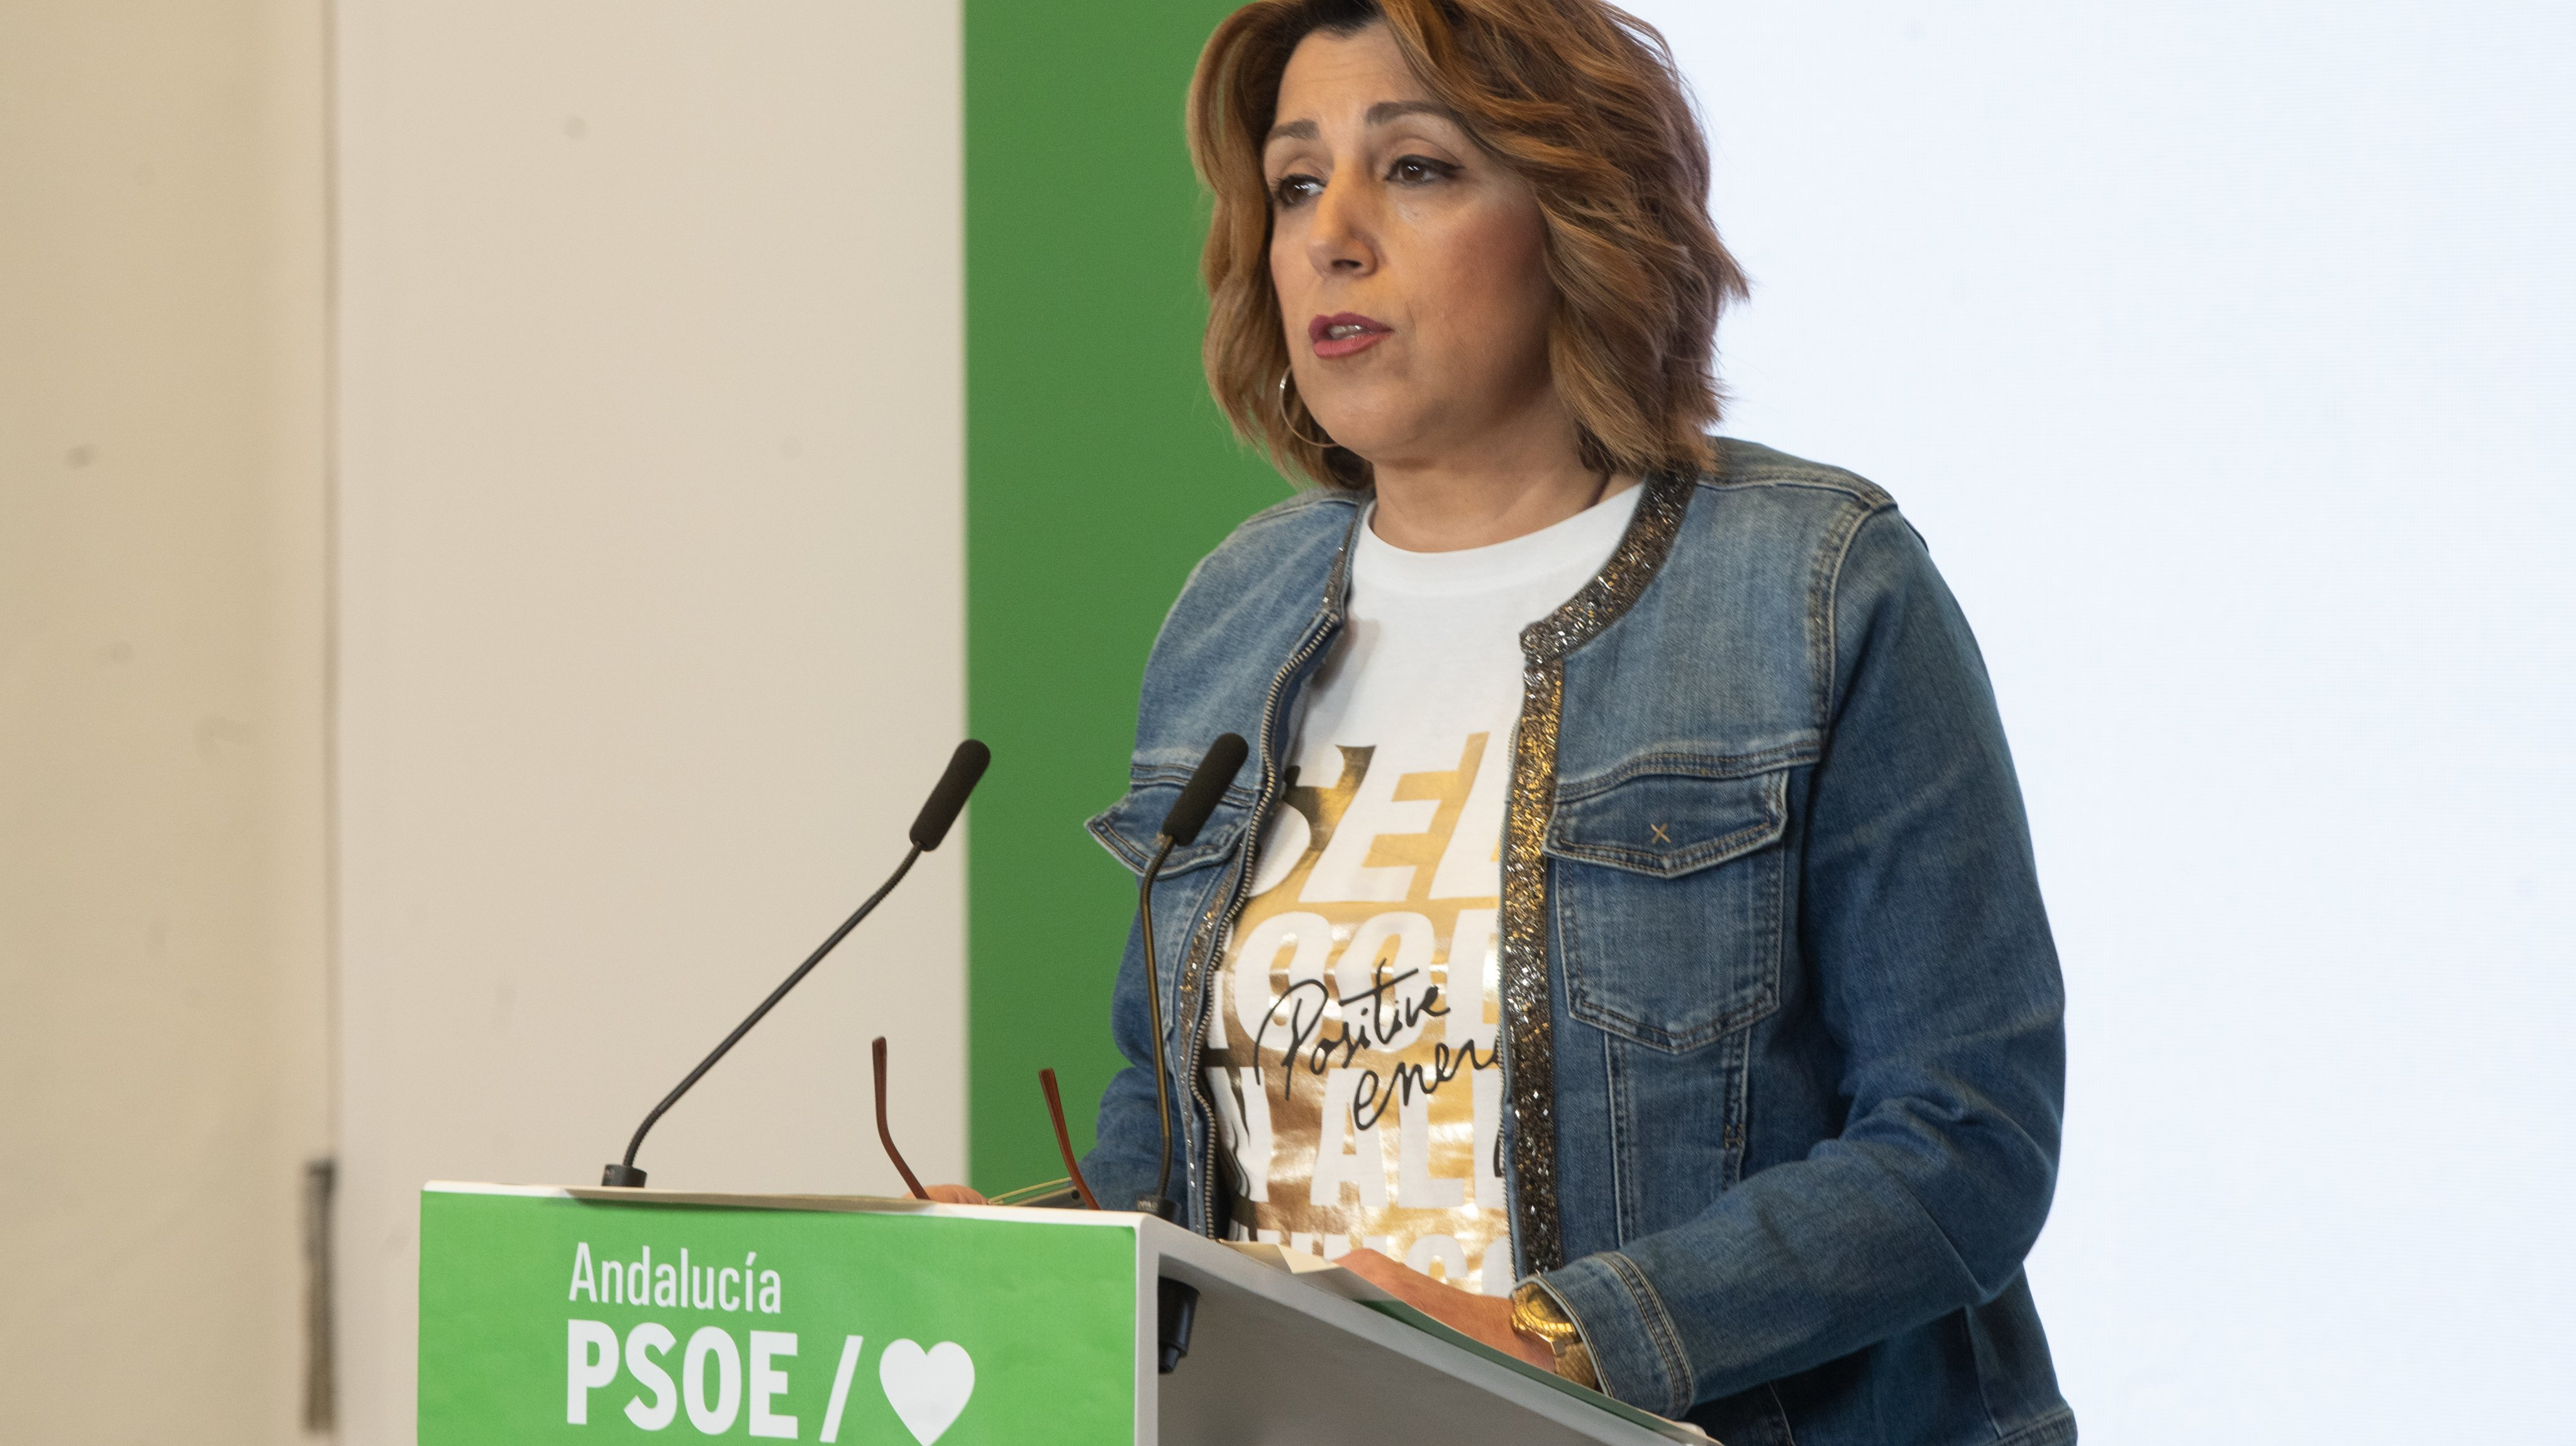 Susana Diaz, Offers A Press Conference On The Occasion Of The Meeting Of The Regional Executive Committee